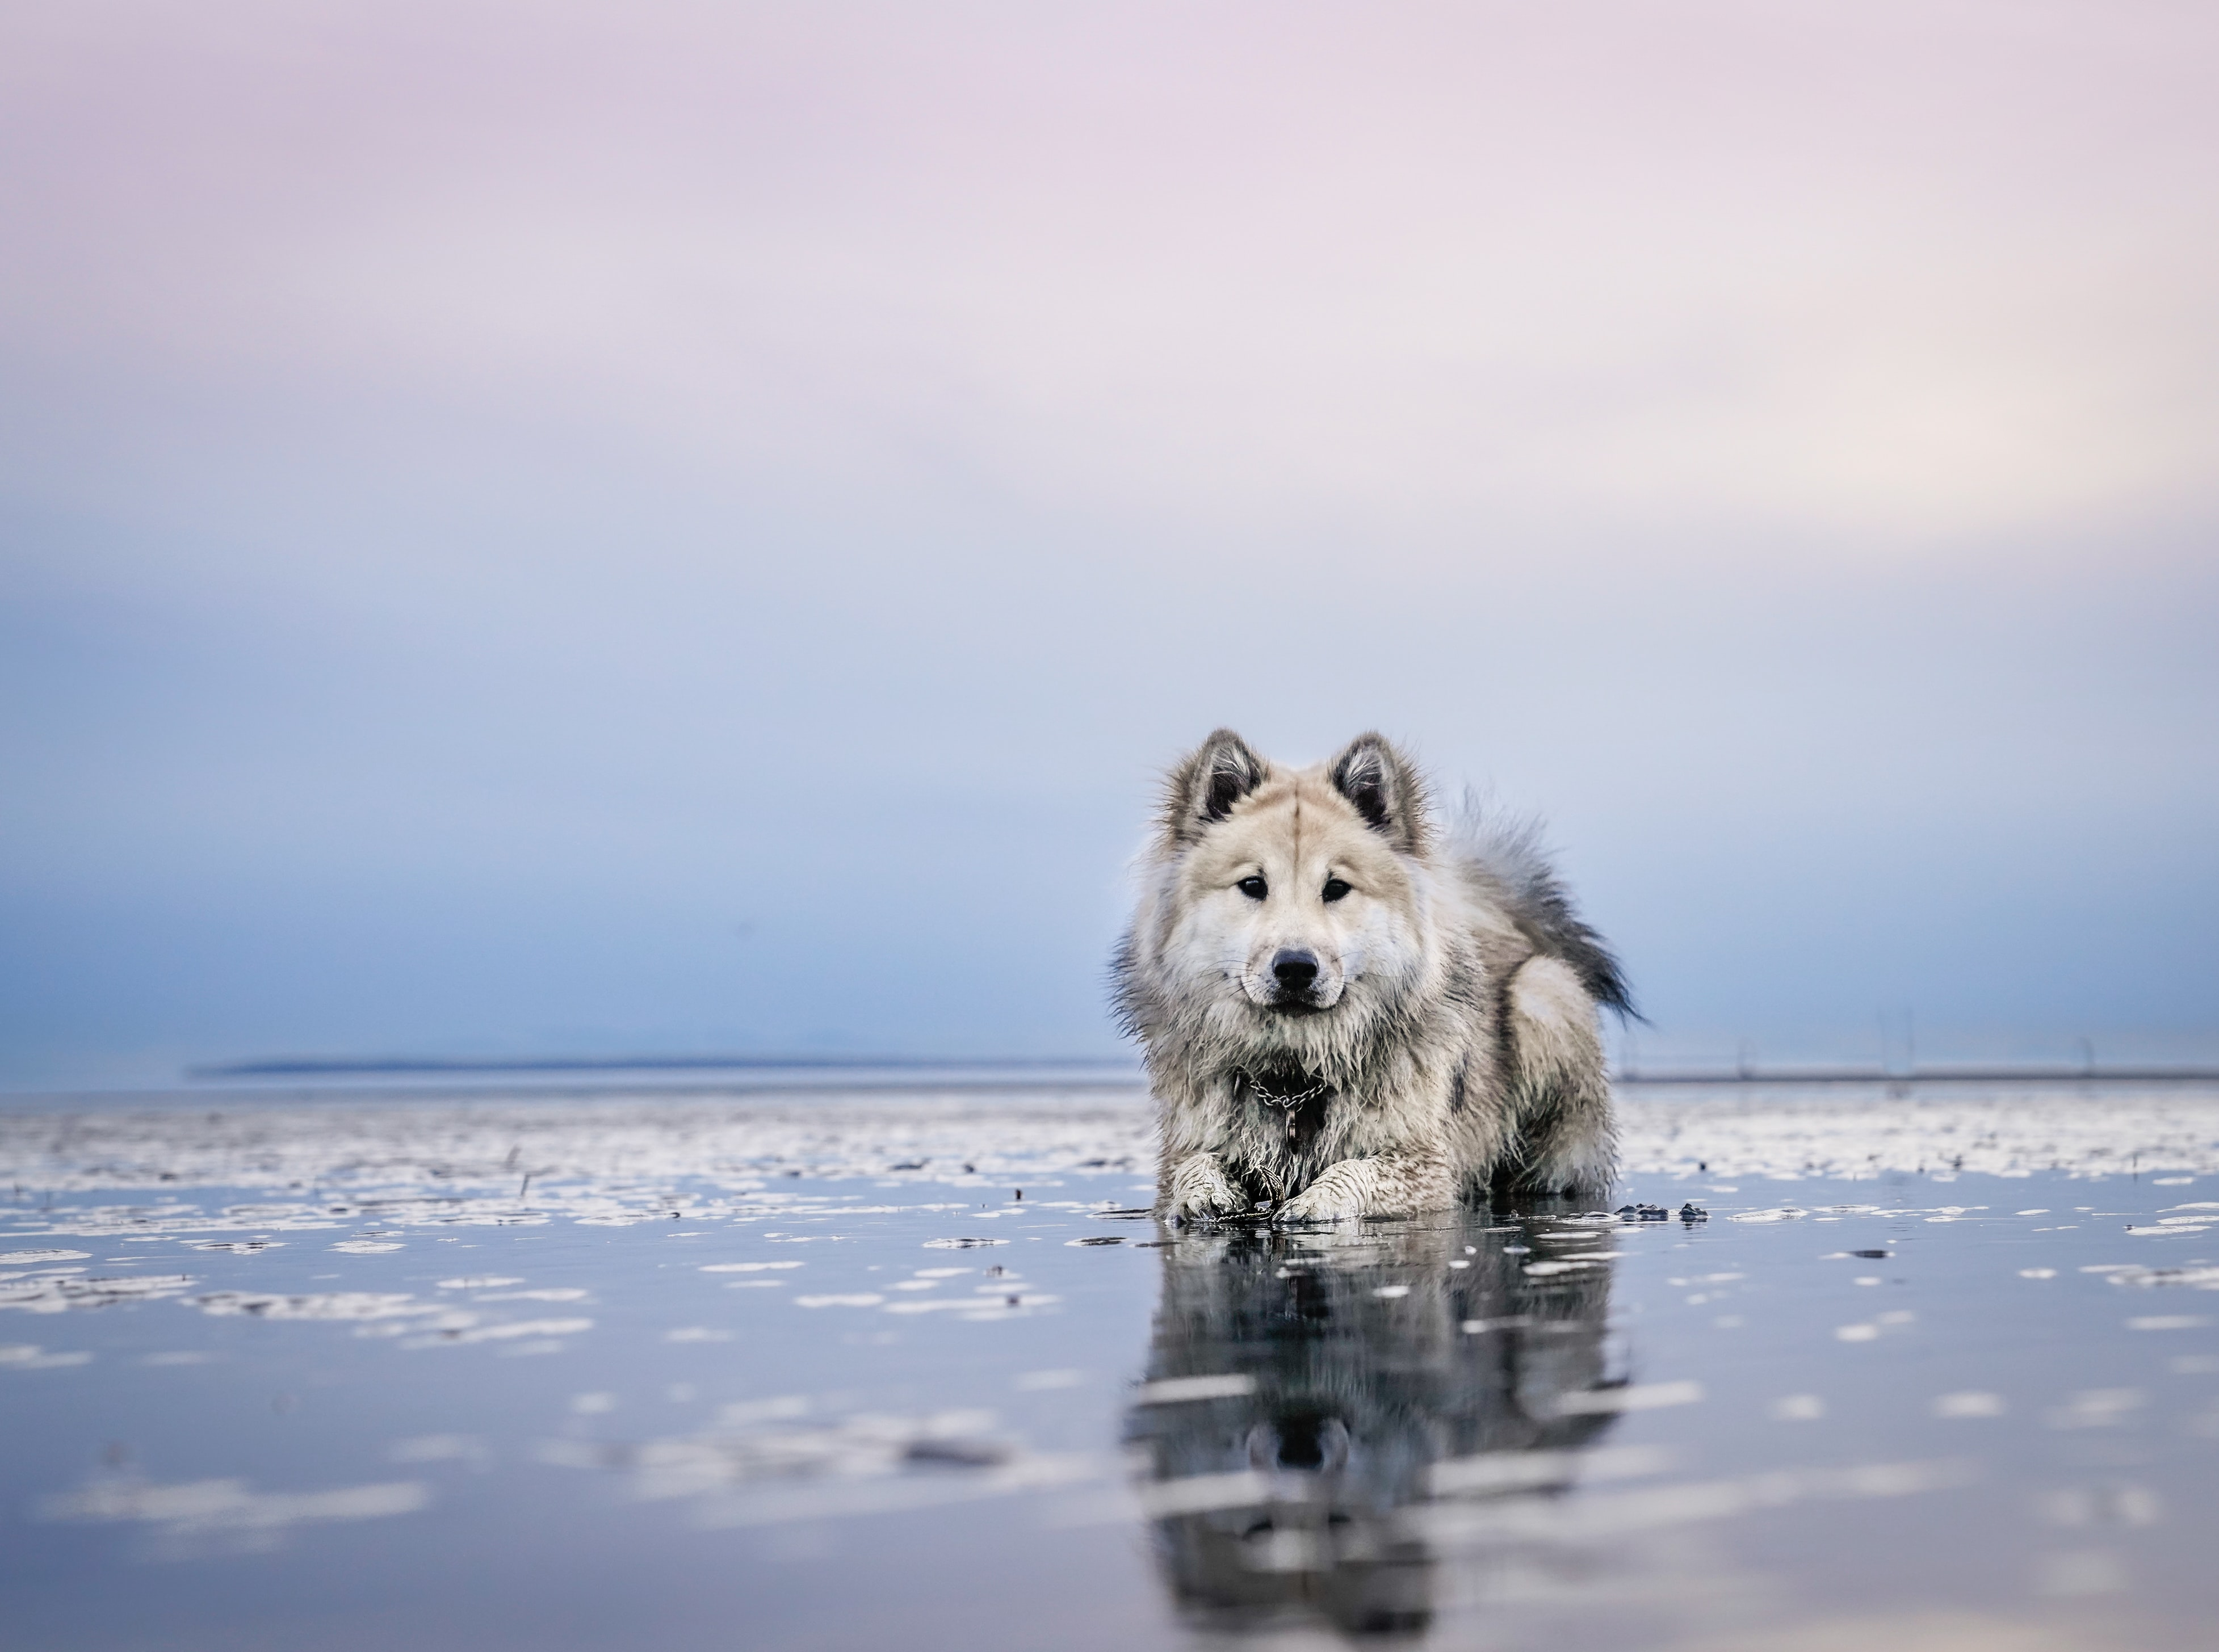 dog on calm body of water